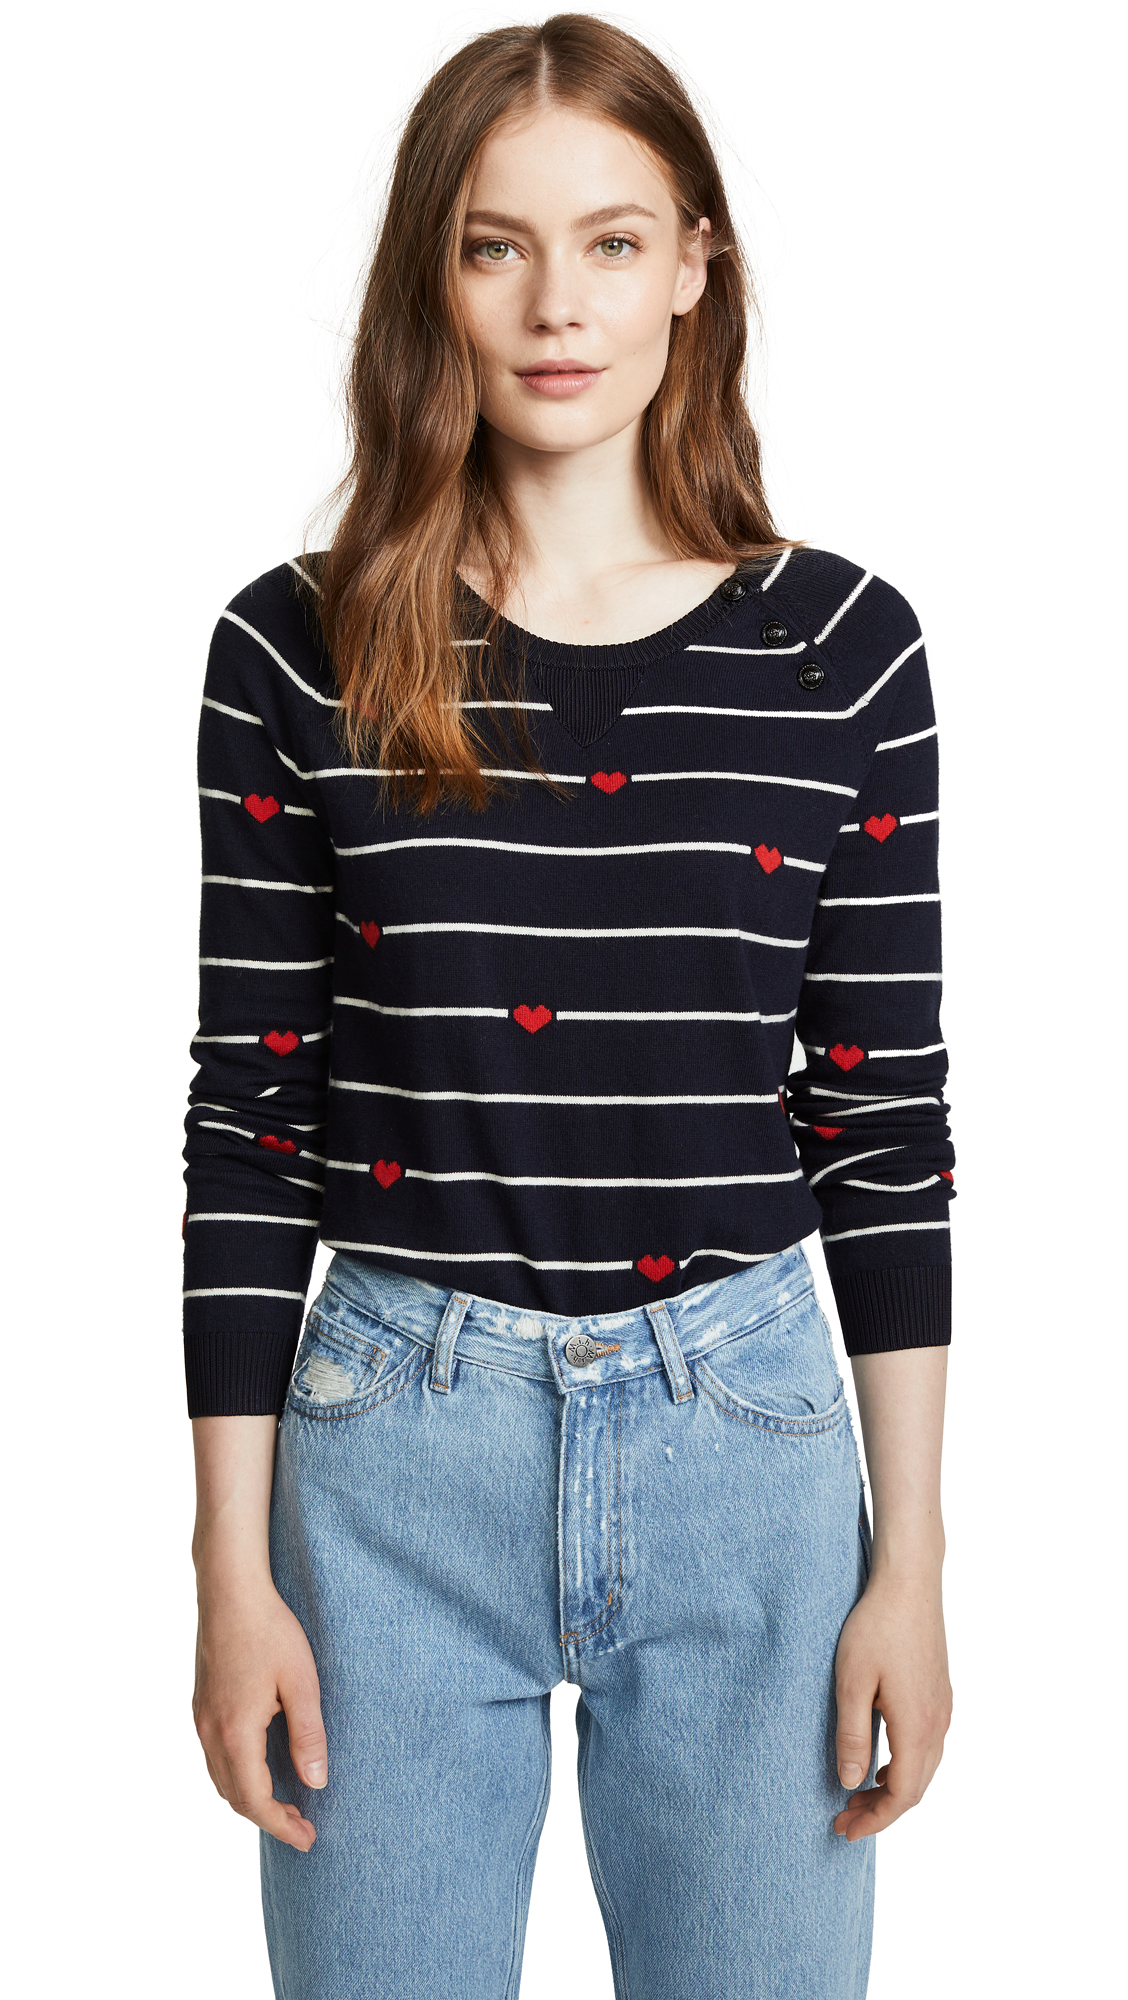 SCOTCH & SODA/MAISON SCOTCH HEART SWEATER